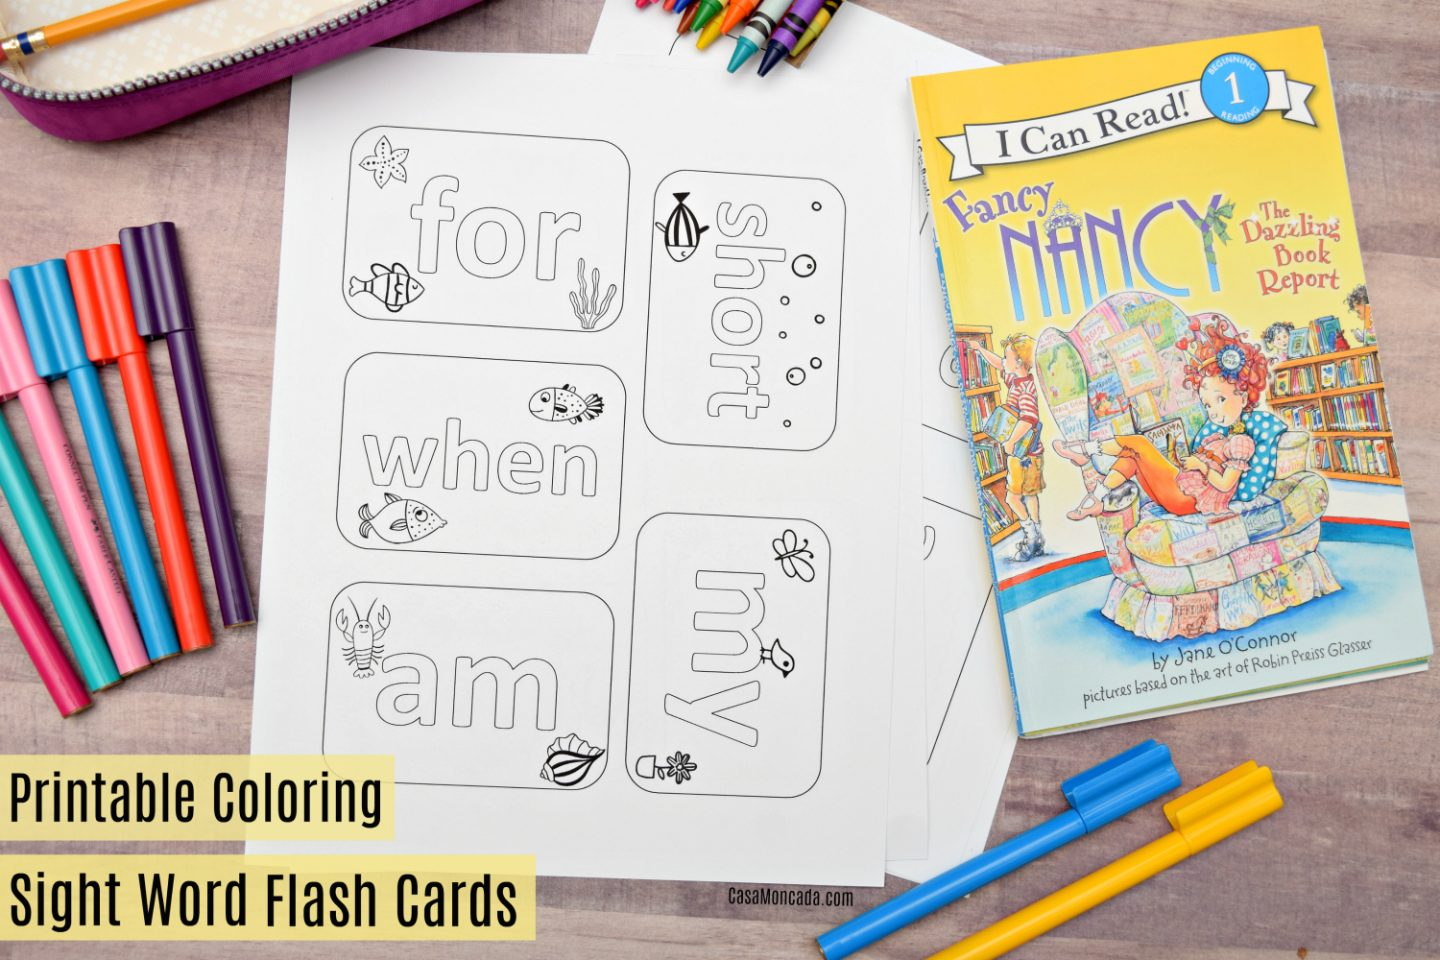 Printable Coloring Flashcards